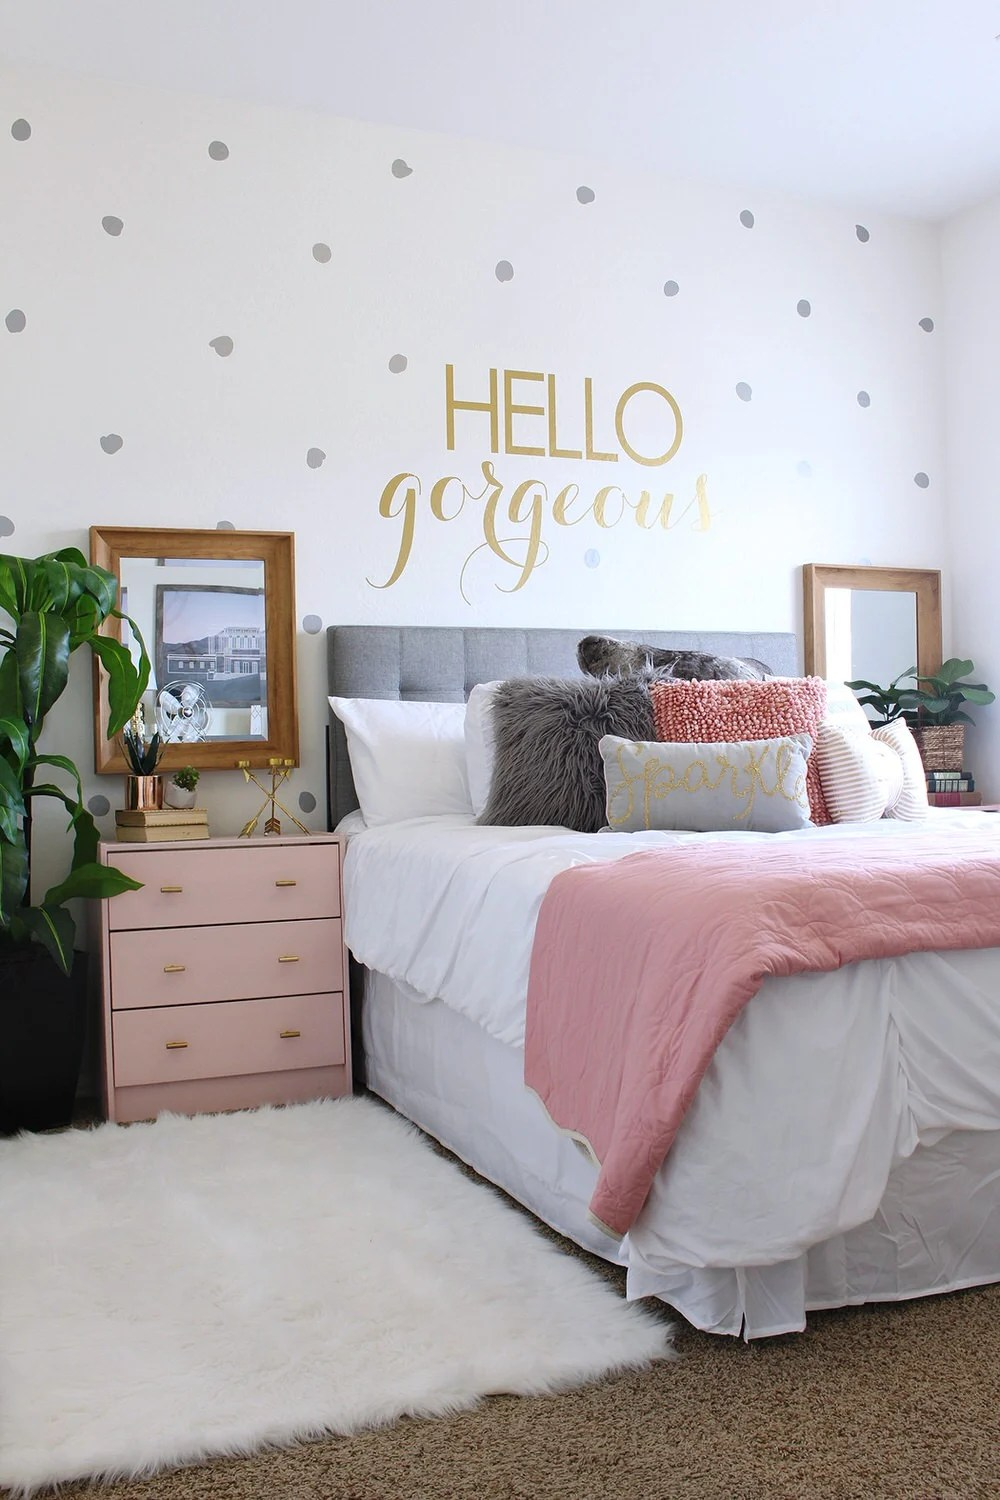 They Added Color In Pillows And Painted An Inexpensive Ikea Nightstands This Soft Pink They Purchased Their Headboard But You Can Learn To Make An